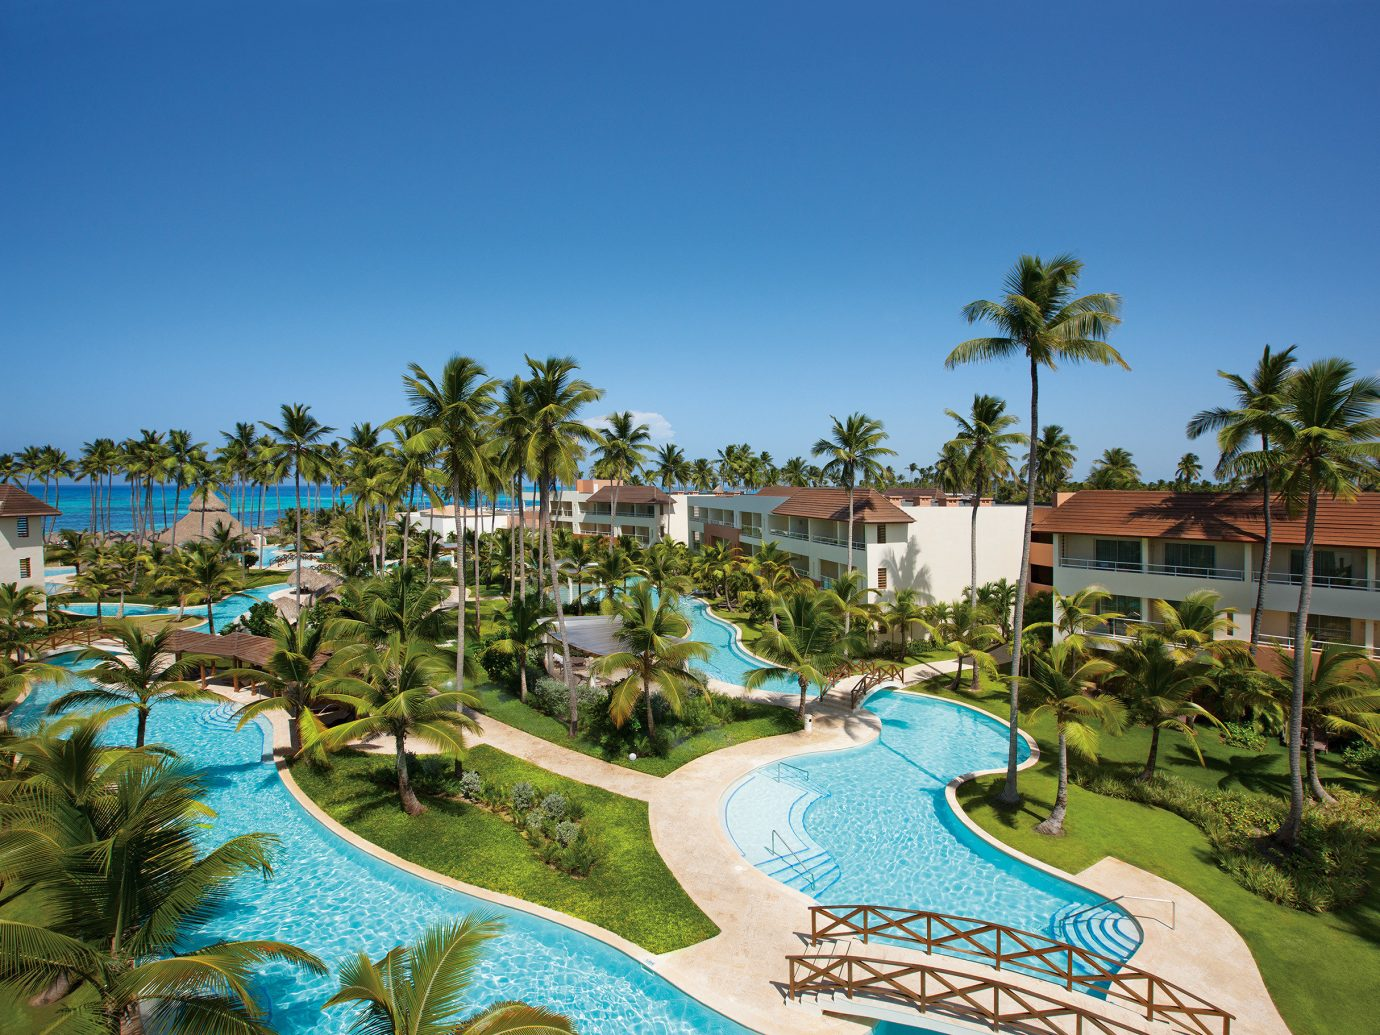 All-Inclusive Resorts Hotels Romance tree sky grass outdoor Resort leisure property swimming pool resort town vacation real estate palm tree estate arecales tourism palm tropics hotel caribbean Pool Lagoon condominium bay colorful Garden plant area